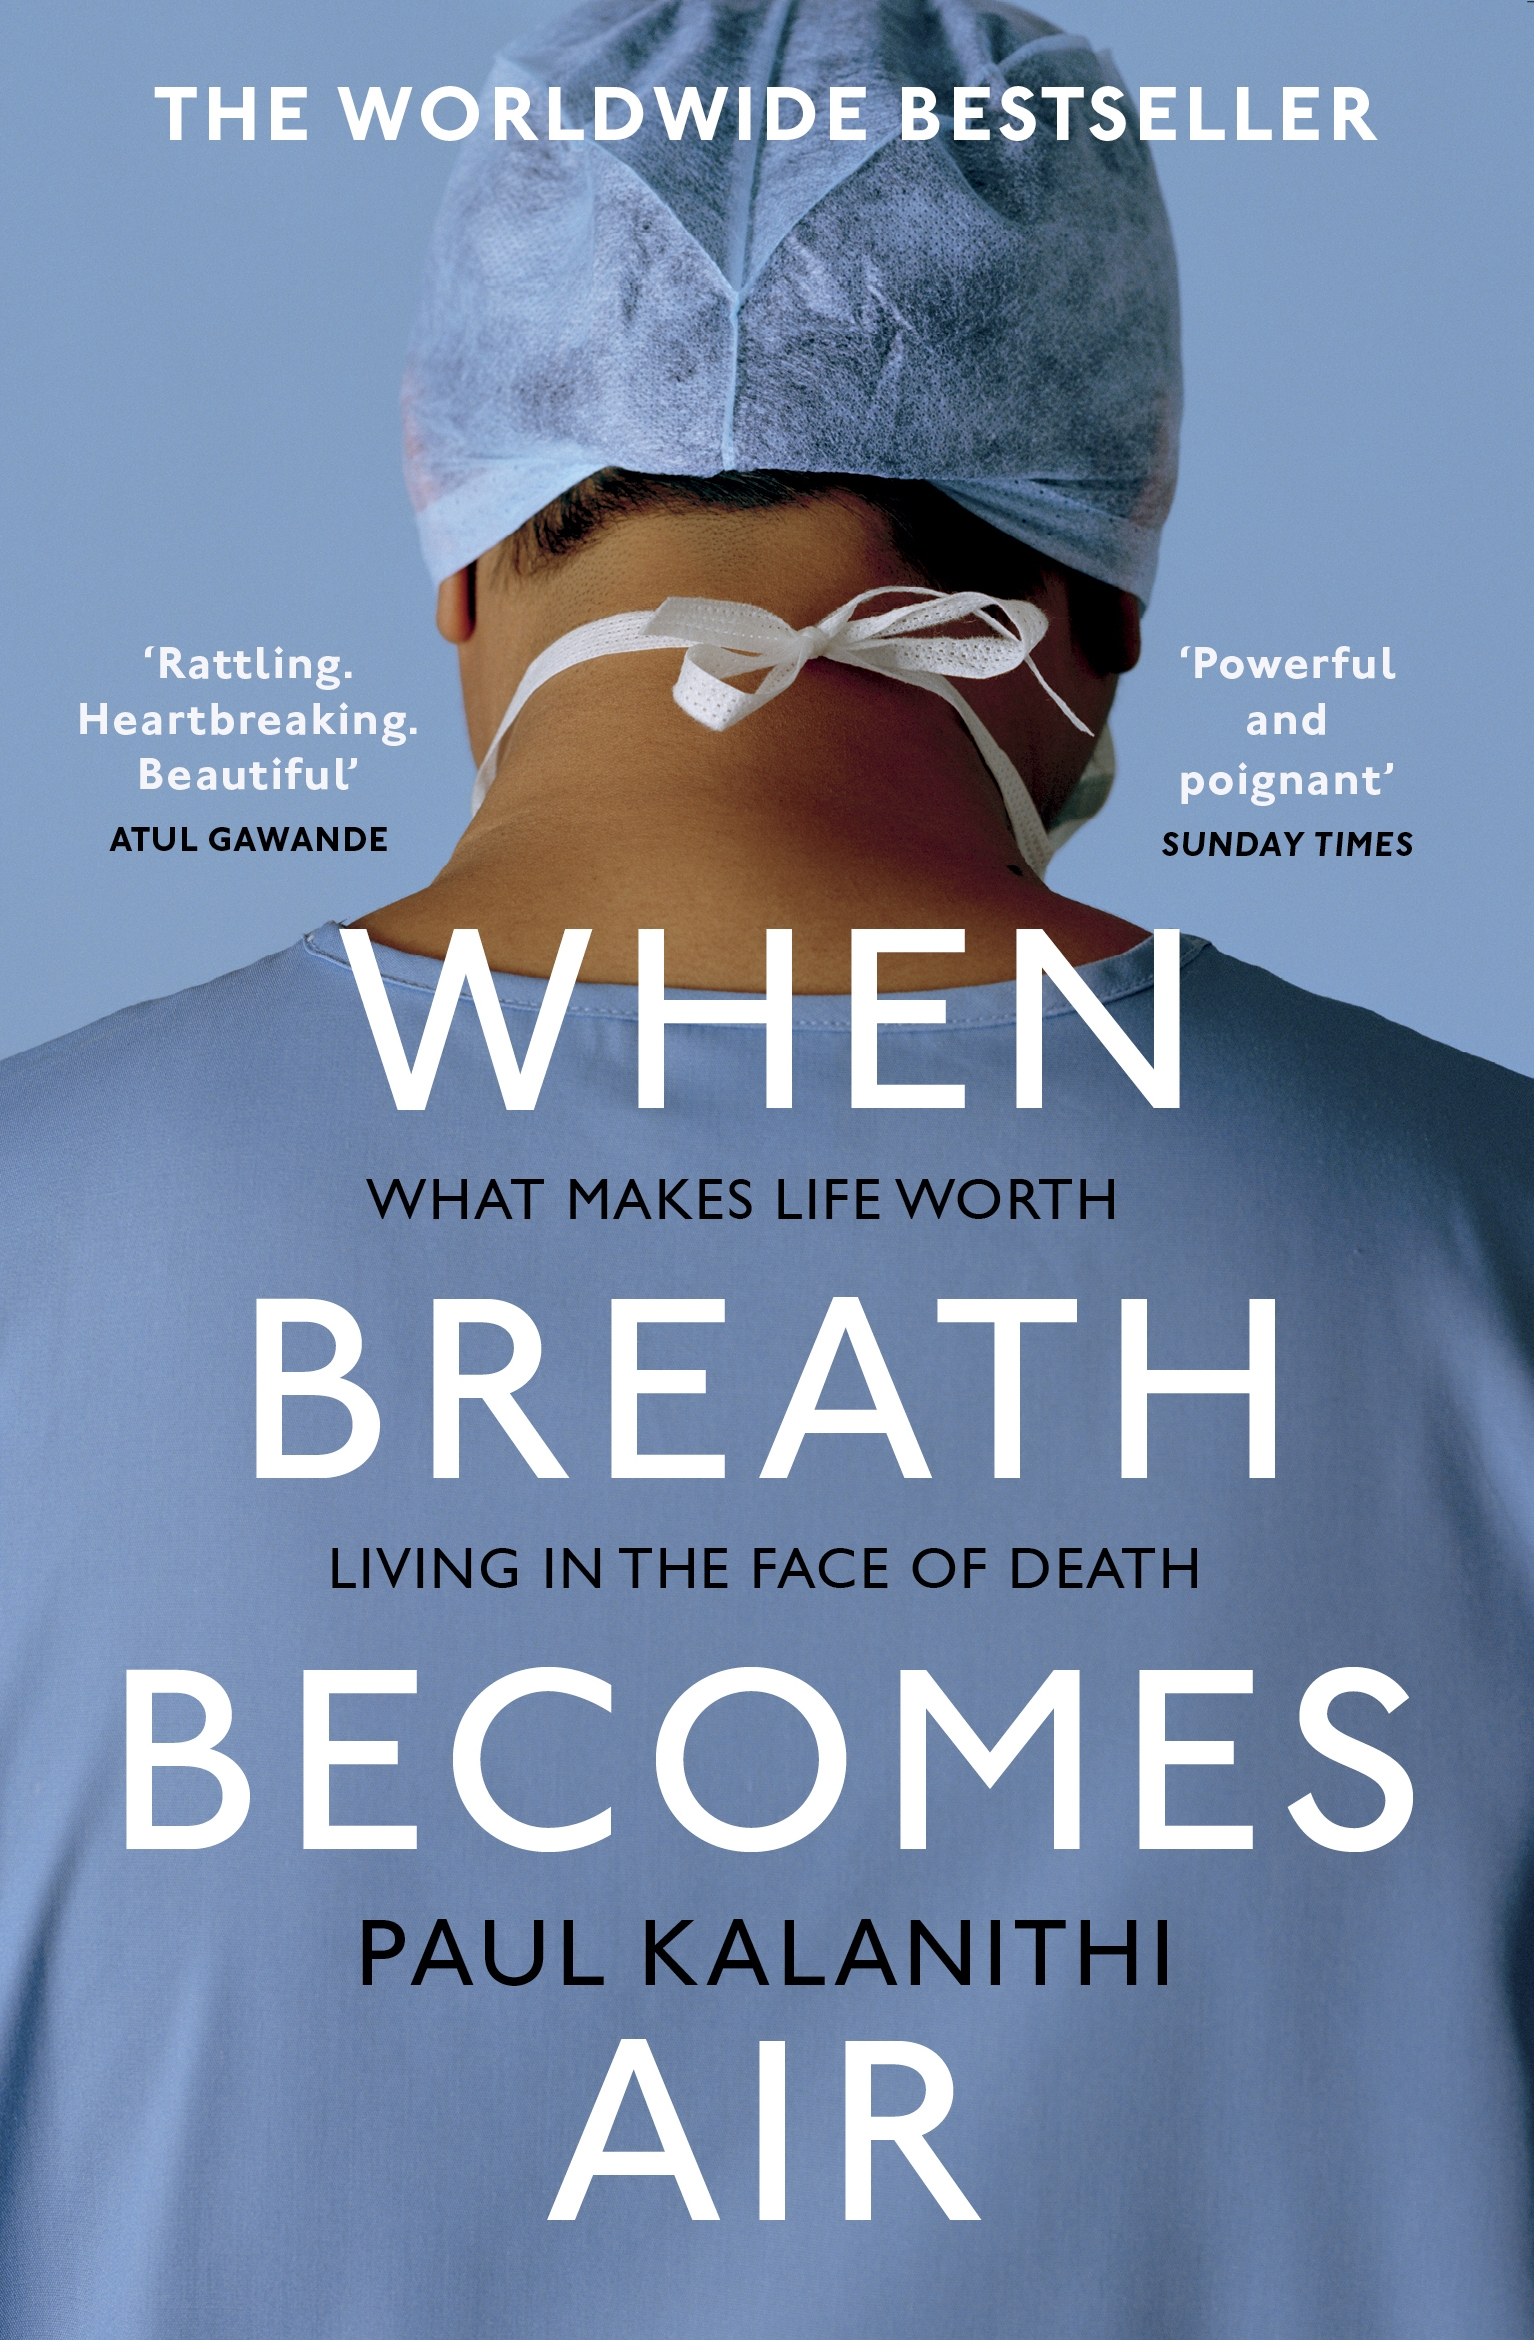 When Breath Becomes Air by Paul Kalanithi, ISBN: 9781784701994